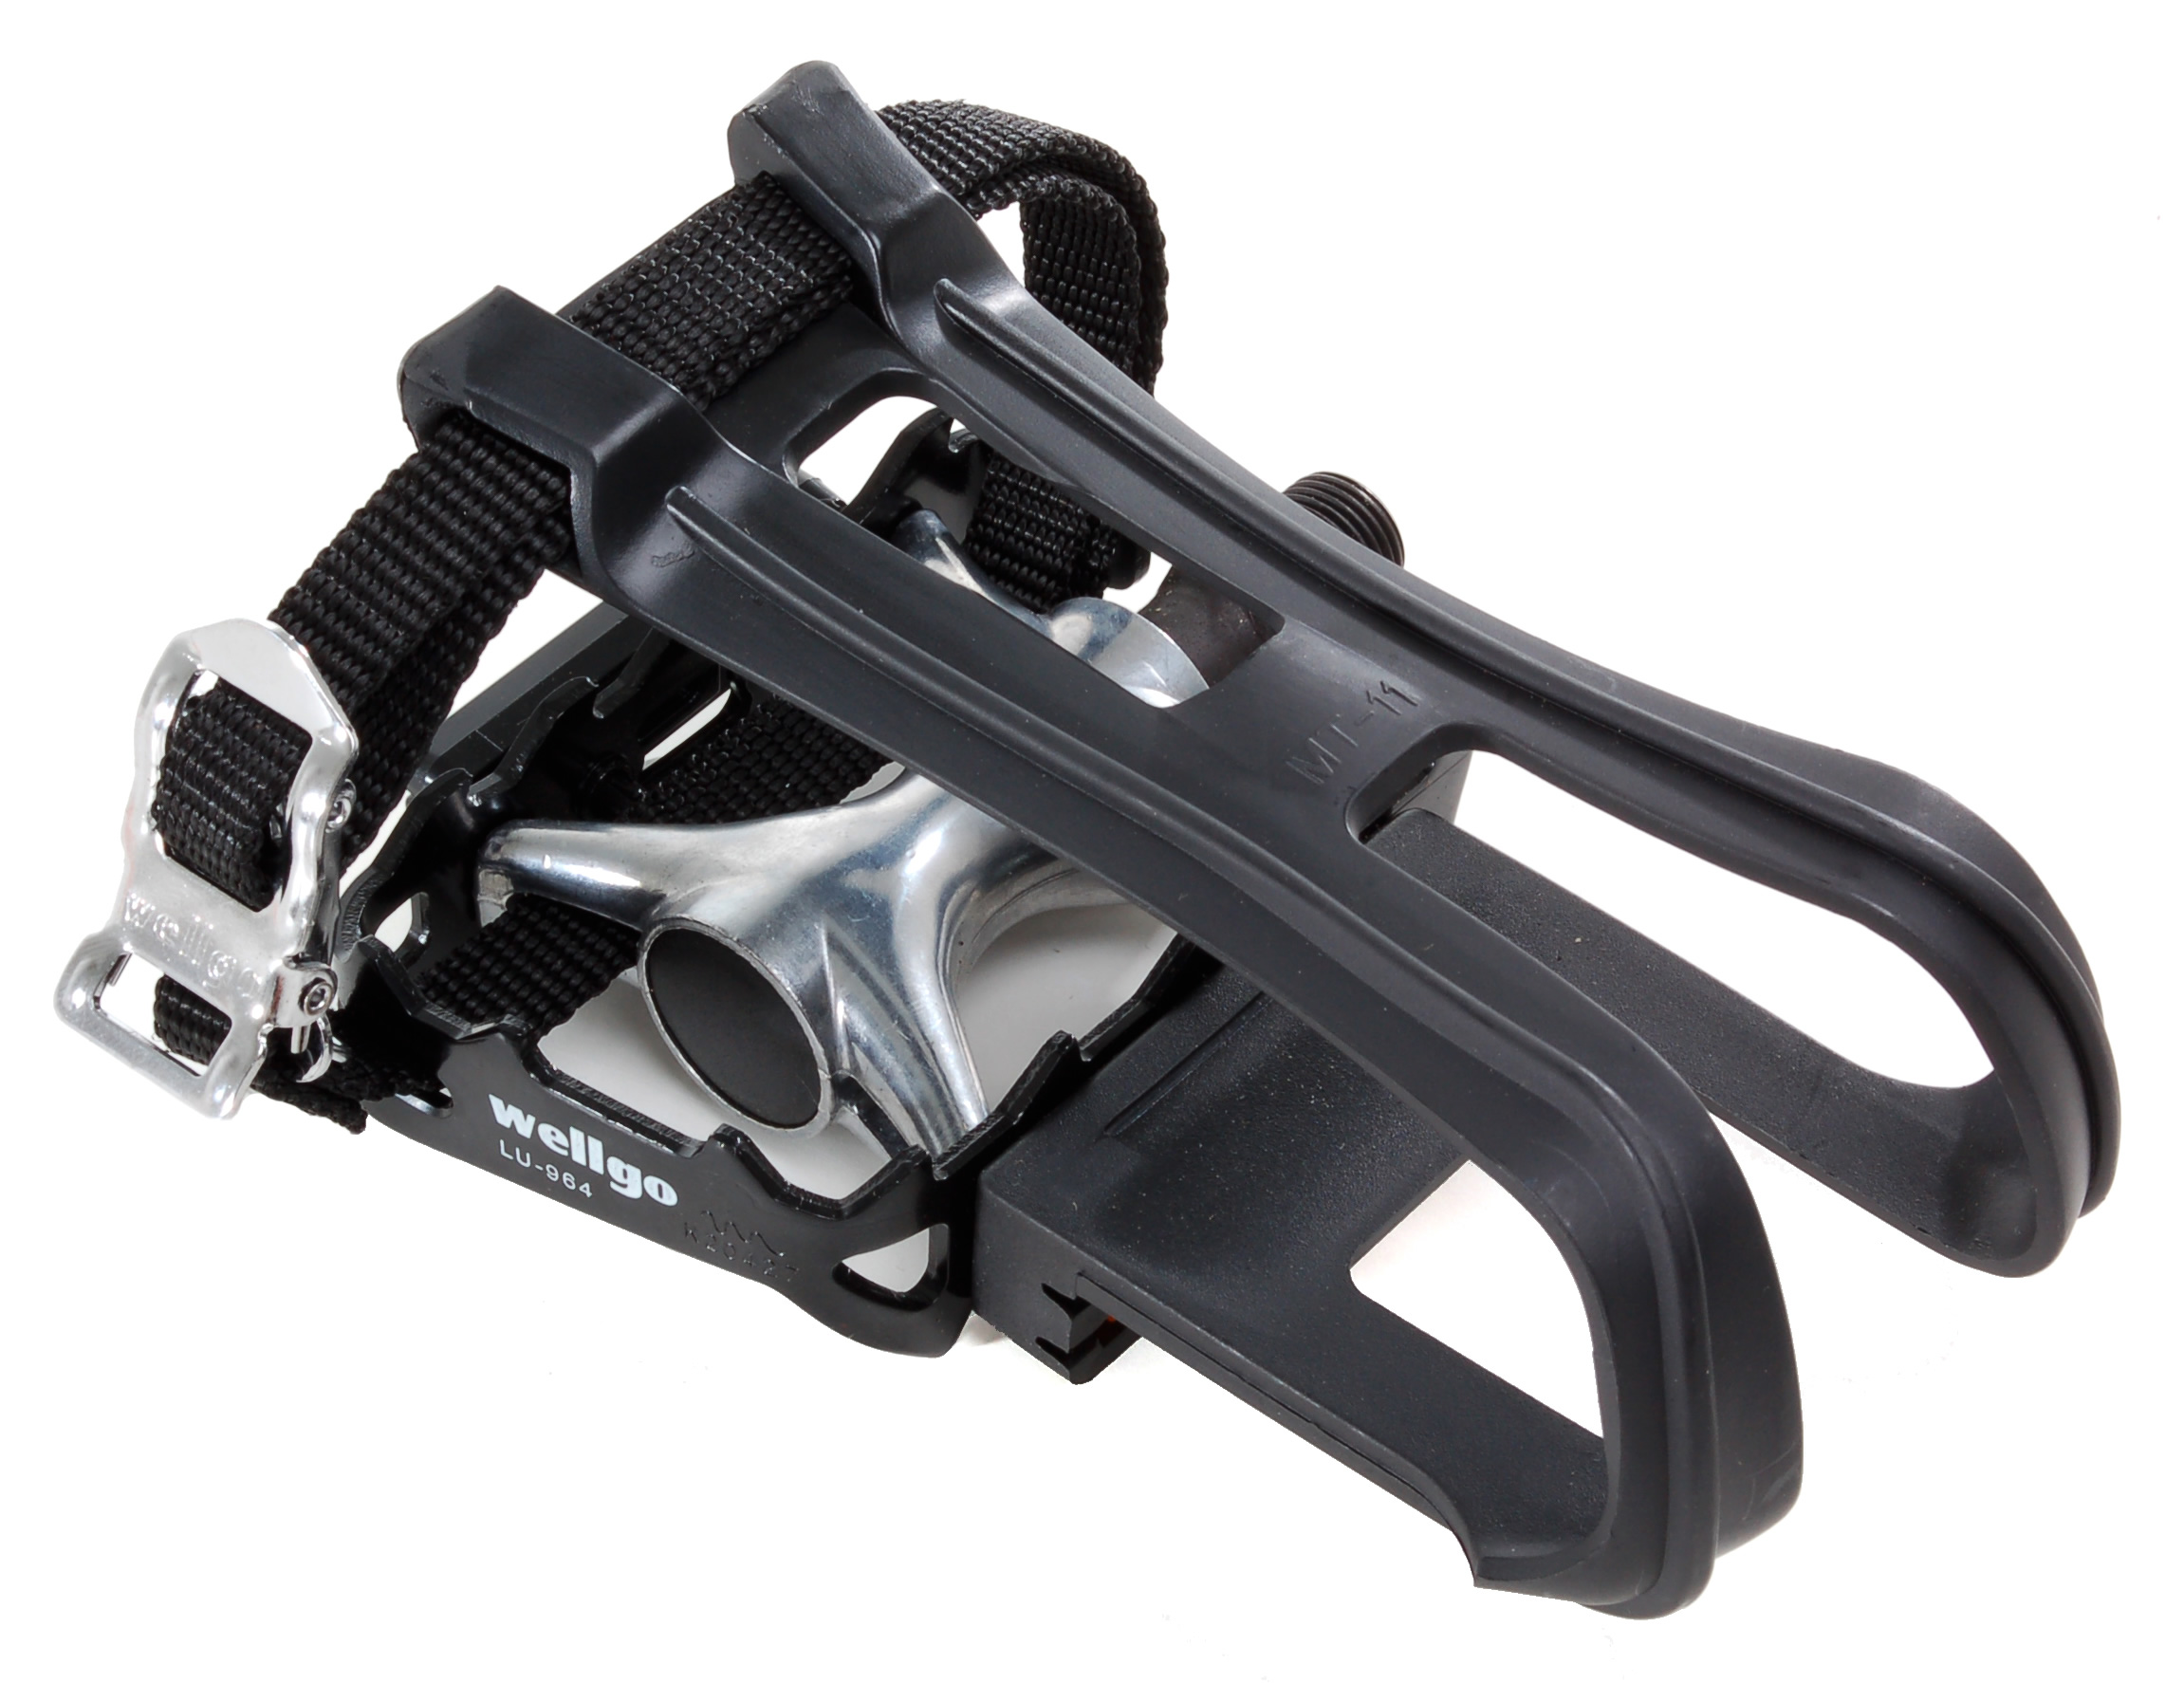 "Wellgo LU-964 Platform Pedal with Toe Clip and Strap Black 9/16"" at Sears.com"